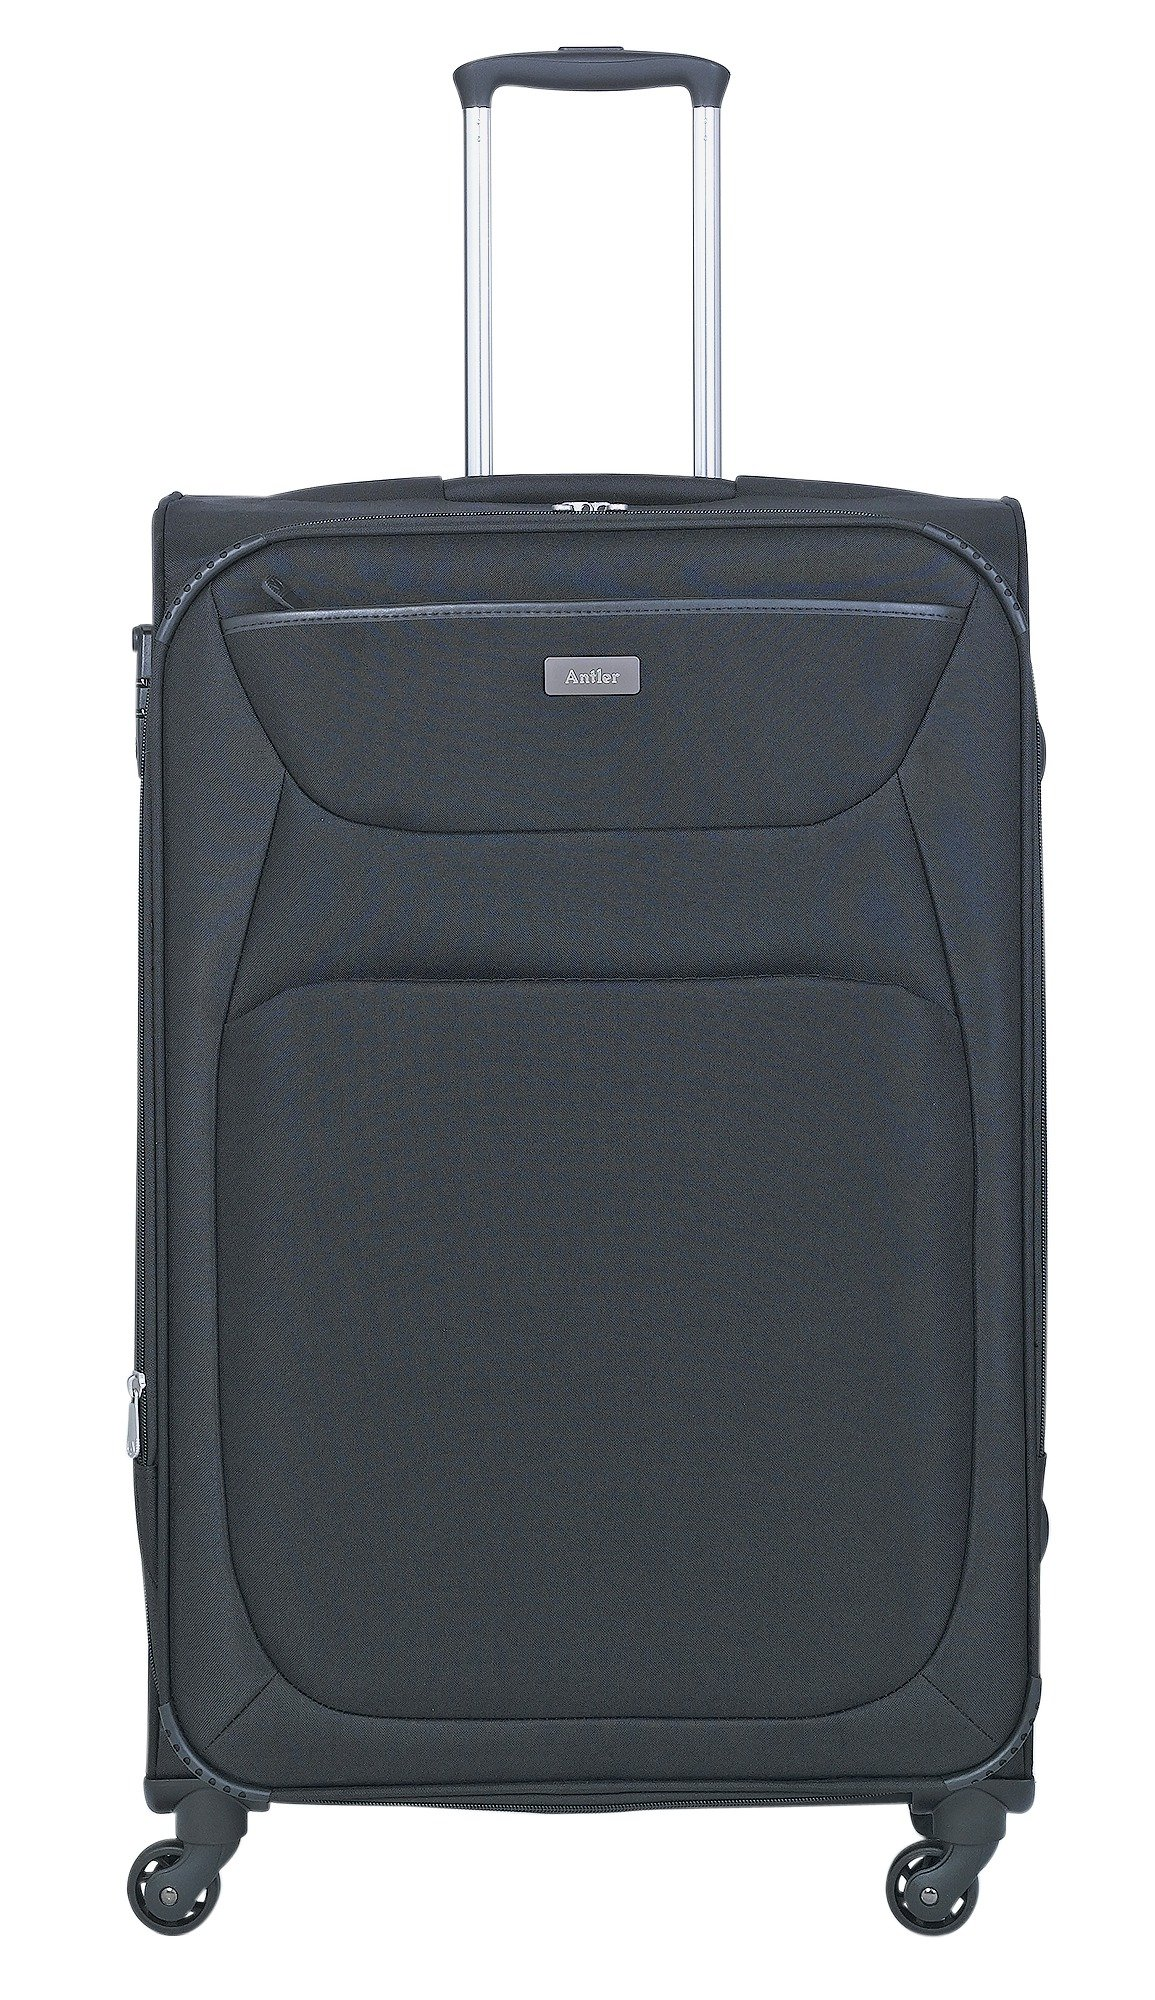 Image of Antler Savanna 4 Wheel Base Large Suitcase - Black